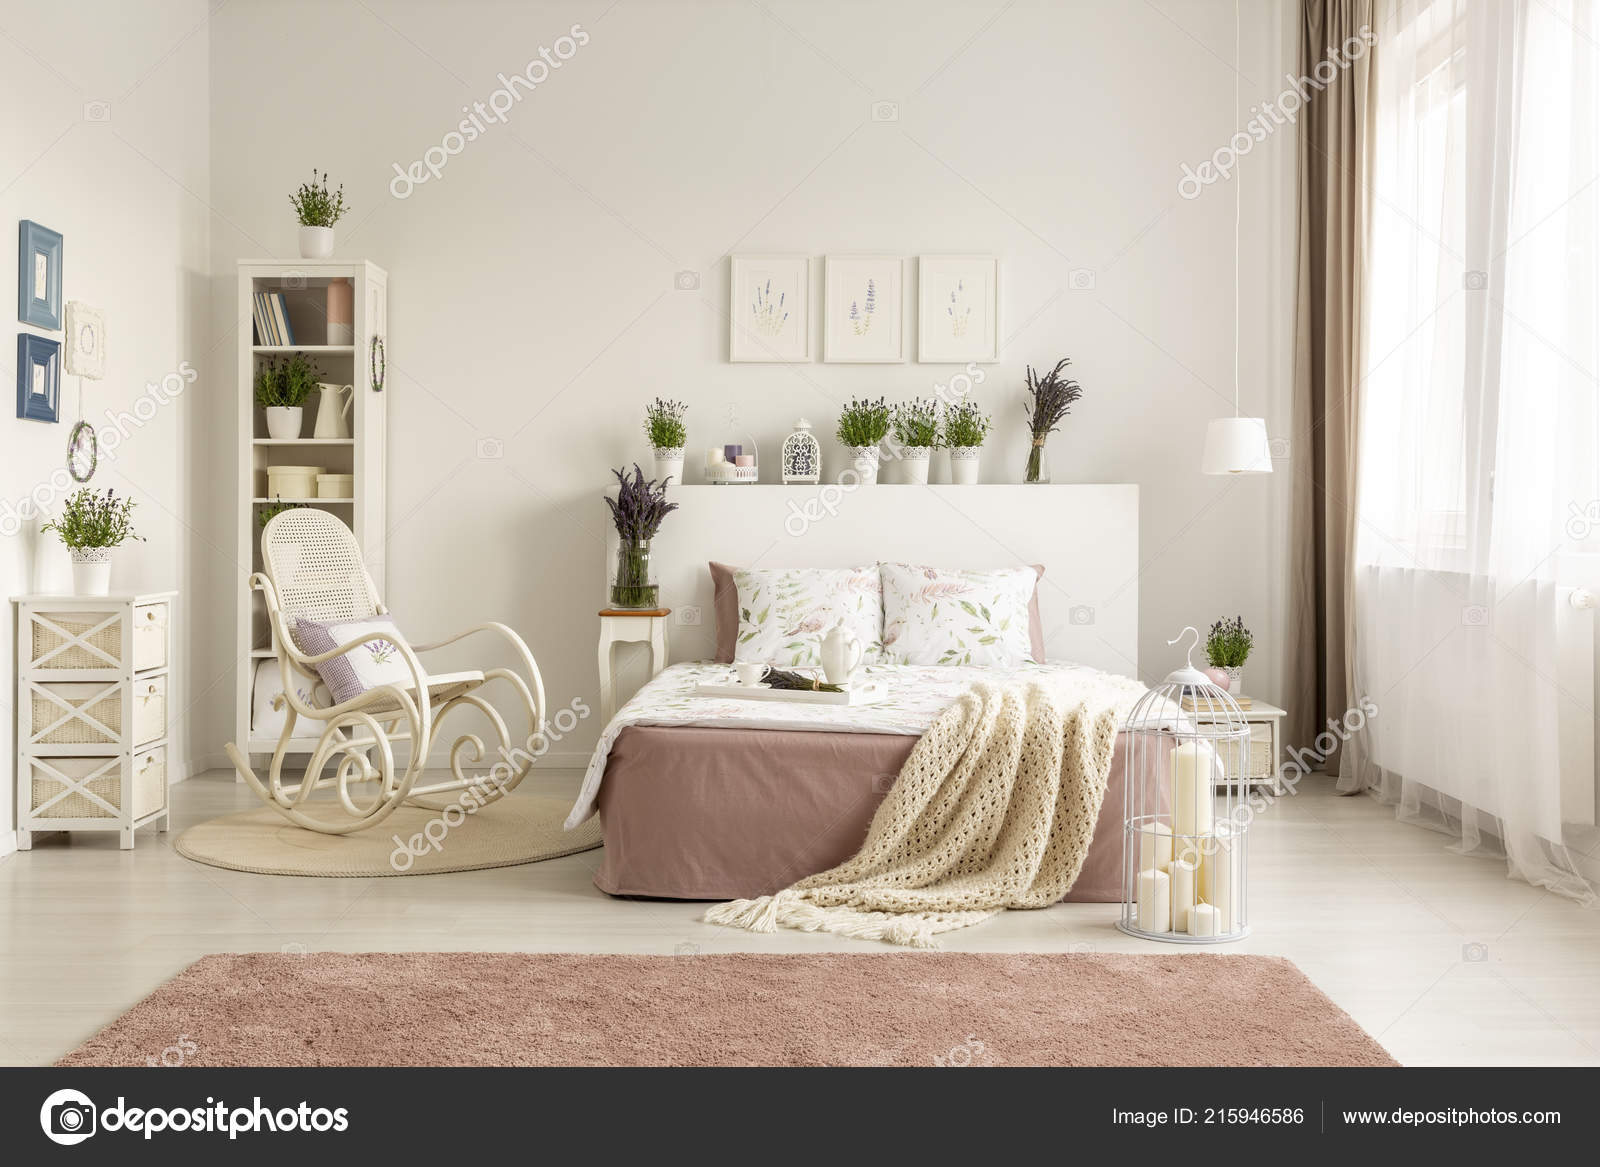 bedroom rocking chair indoor swing uk next bed blanket spacious white interior pink stock photo